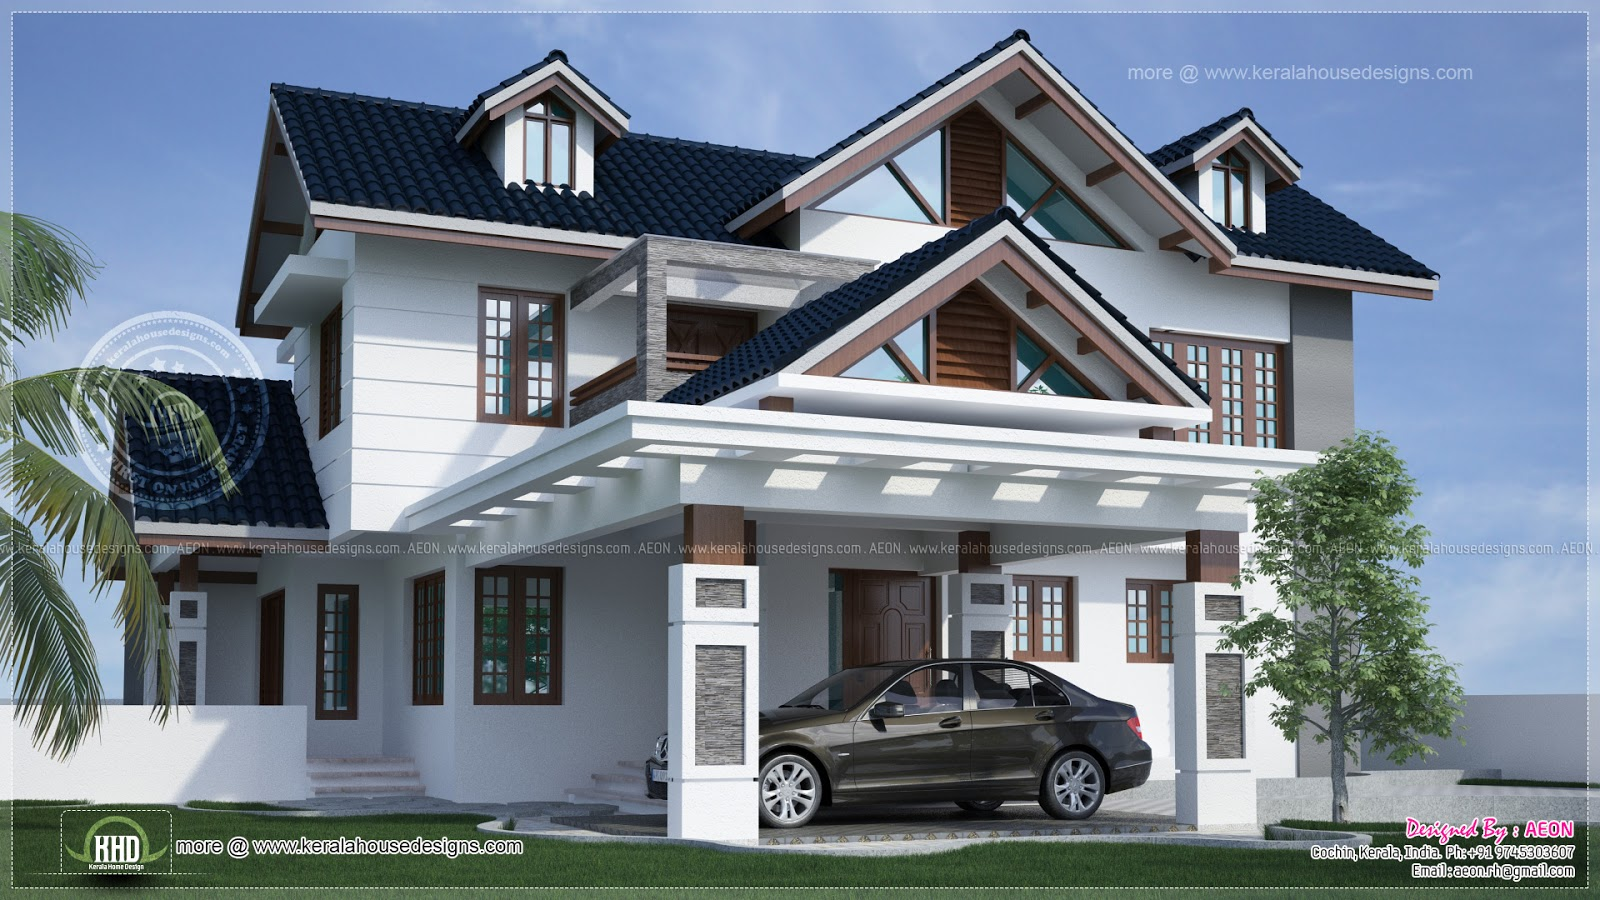 River Side Kerala Style Residence Exterior Design Kerala Home Design And Floor Plans